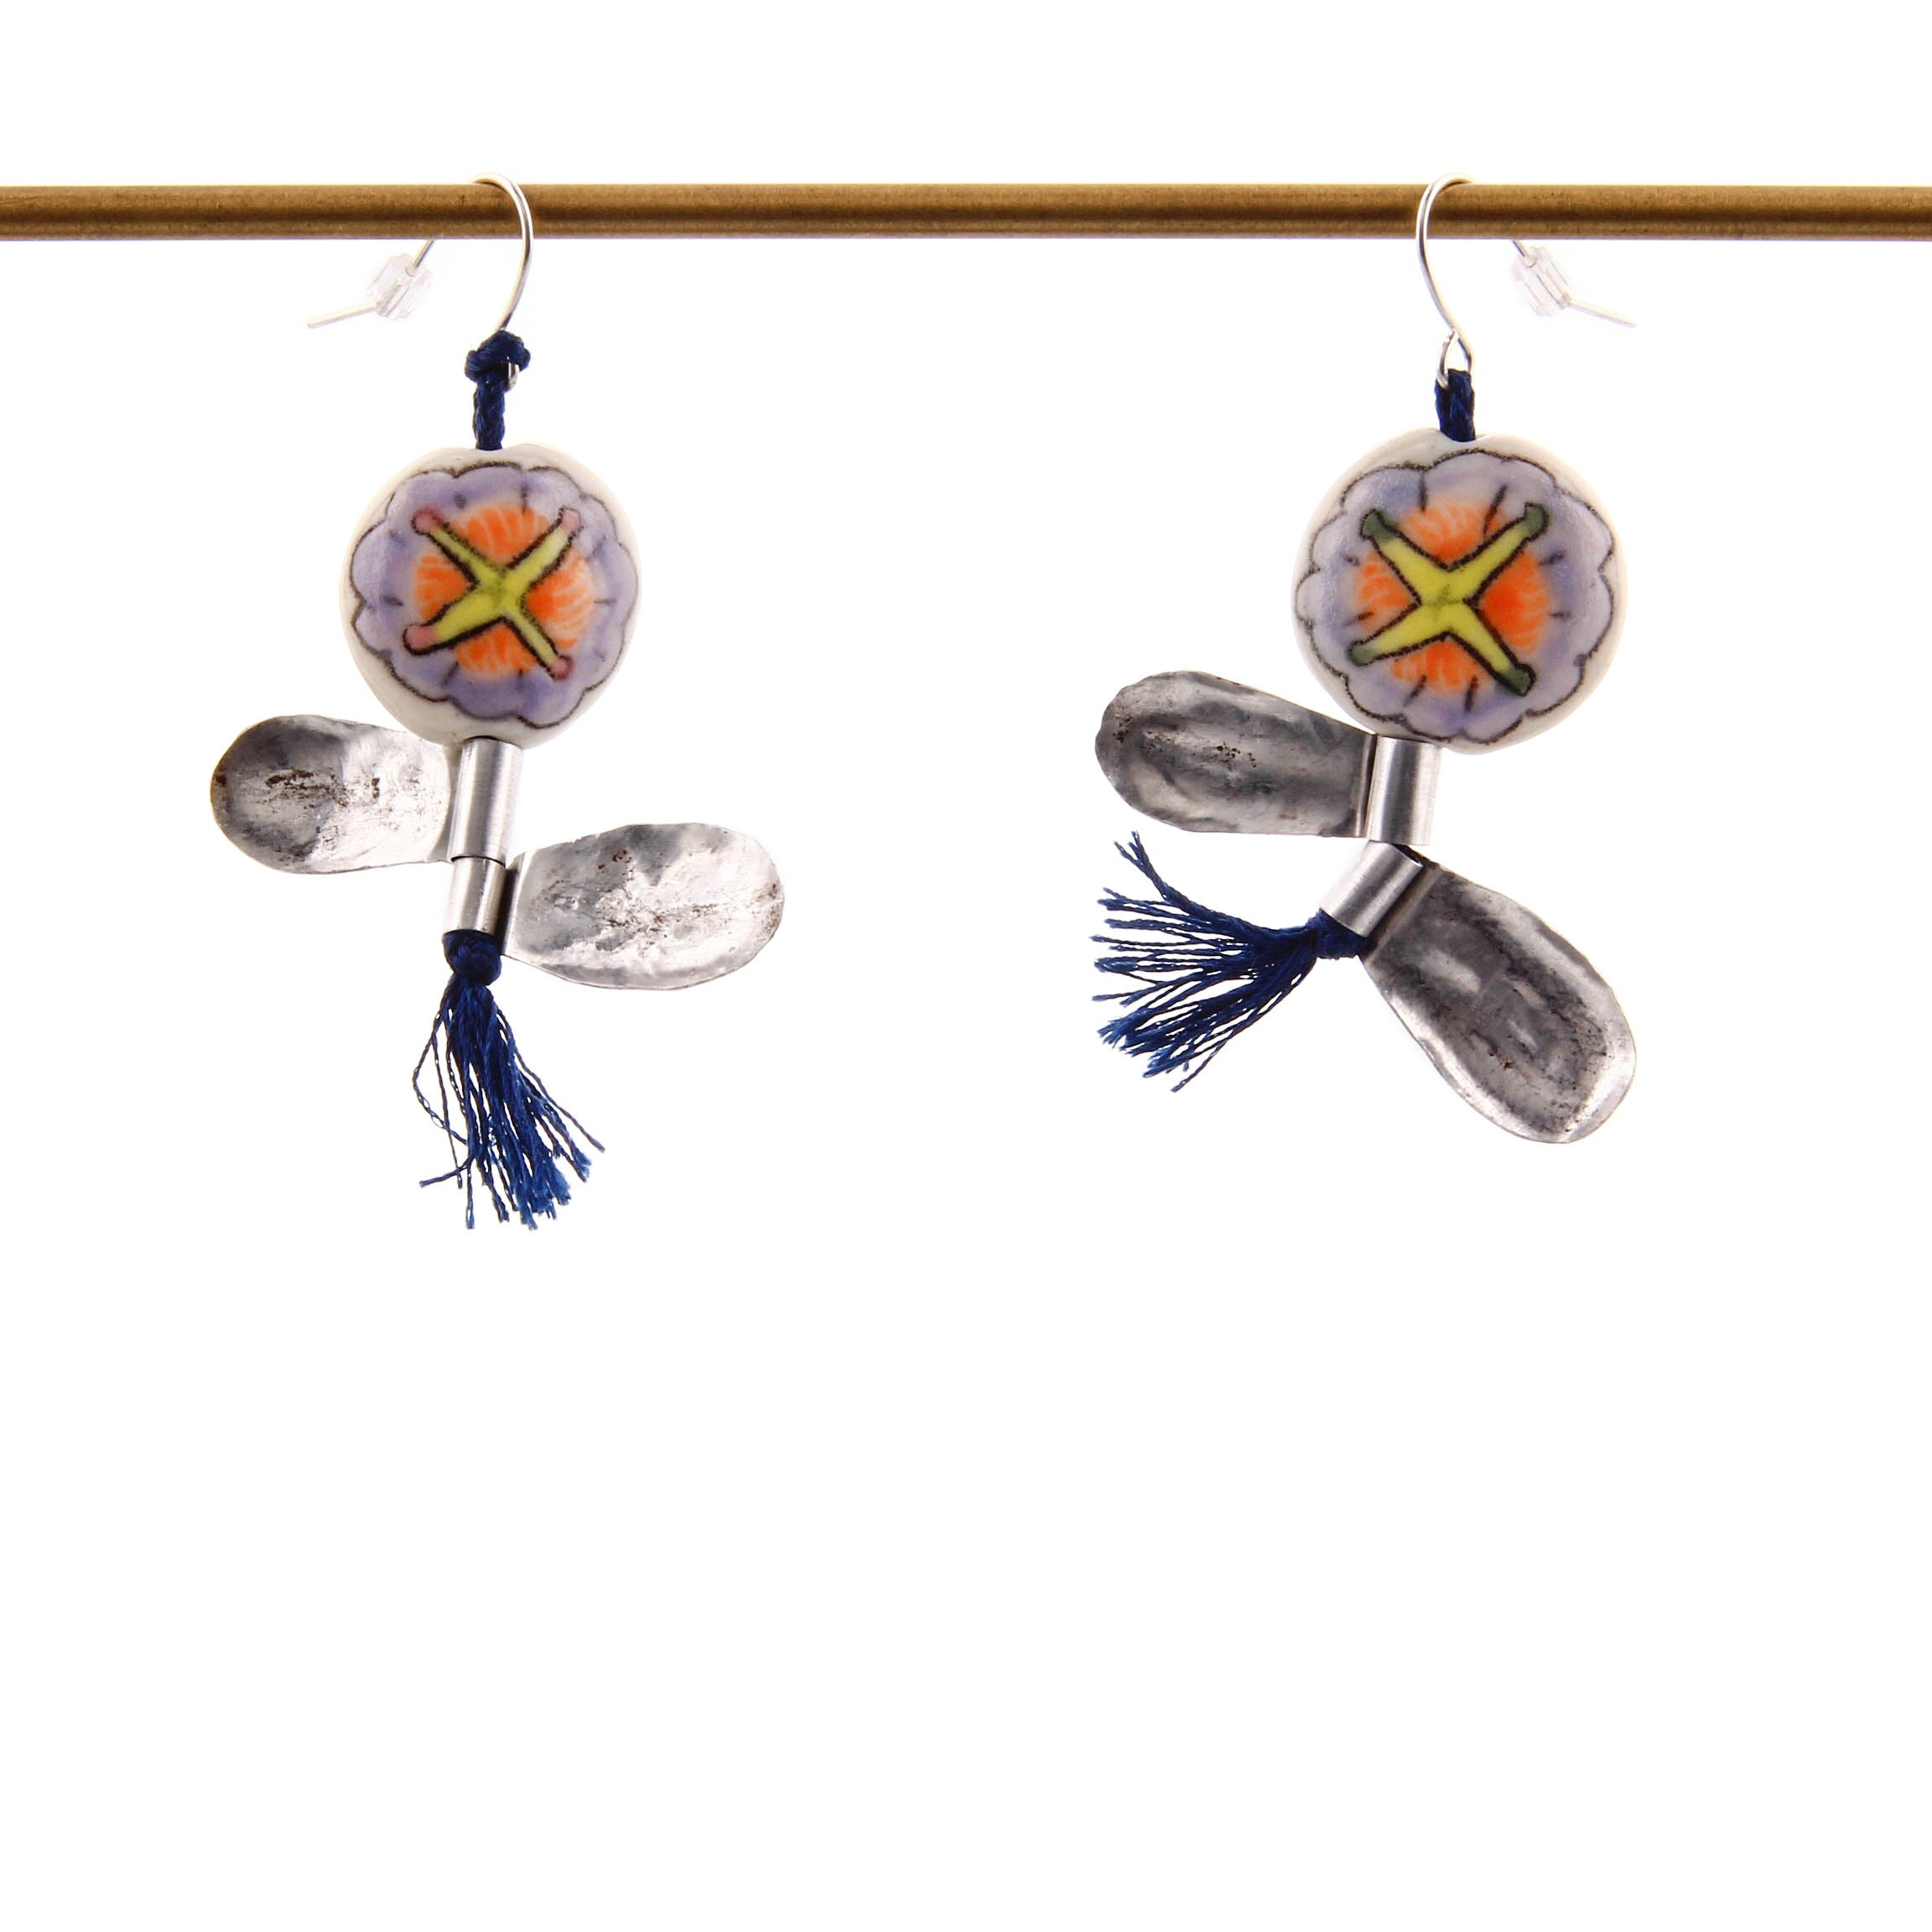 Momoko Usami, Flower Earrings, Ceramics and Metal